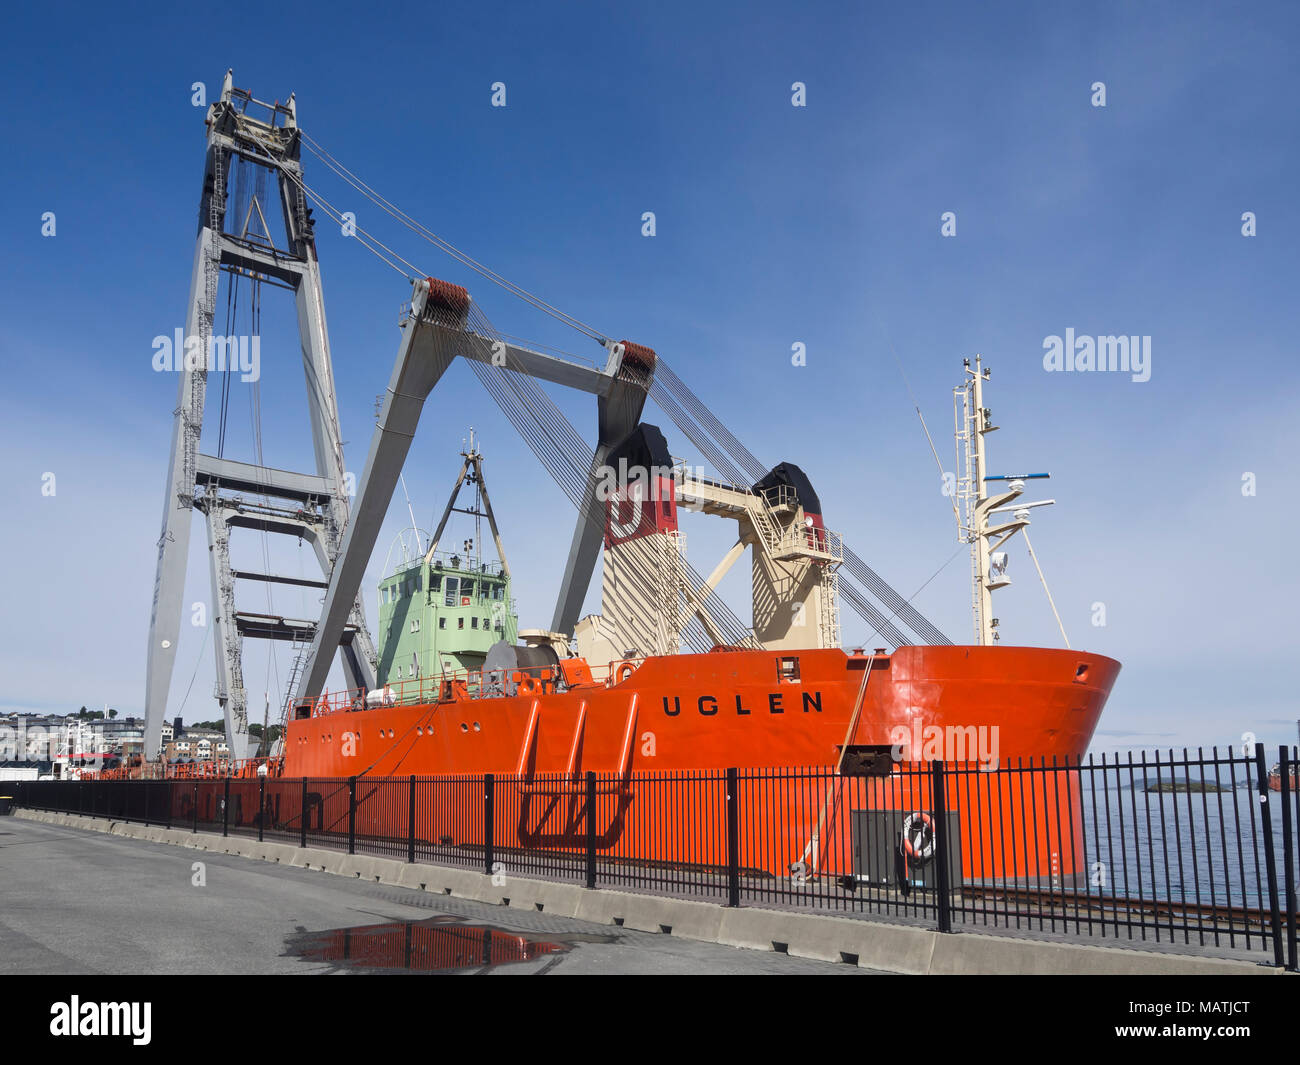 The heavy lift crane vessel UGLEN in the harbor of Stavanger Norway, can lift 800 tonnes, operating mainly in the offshore industry - Stock Image